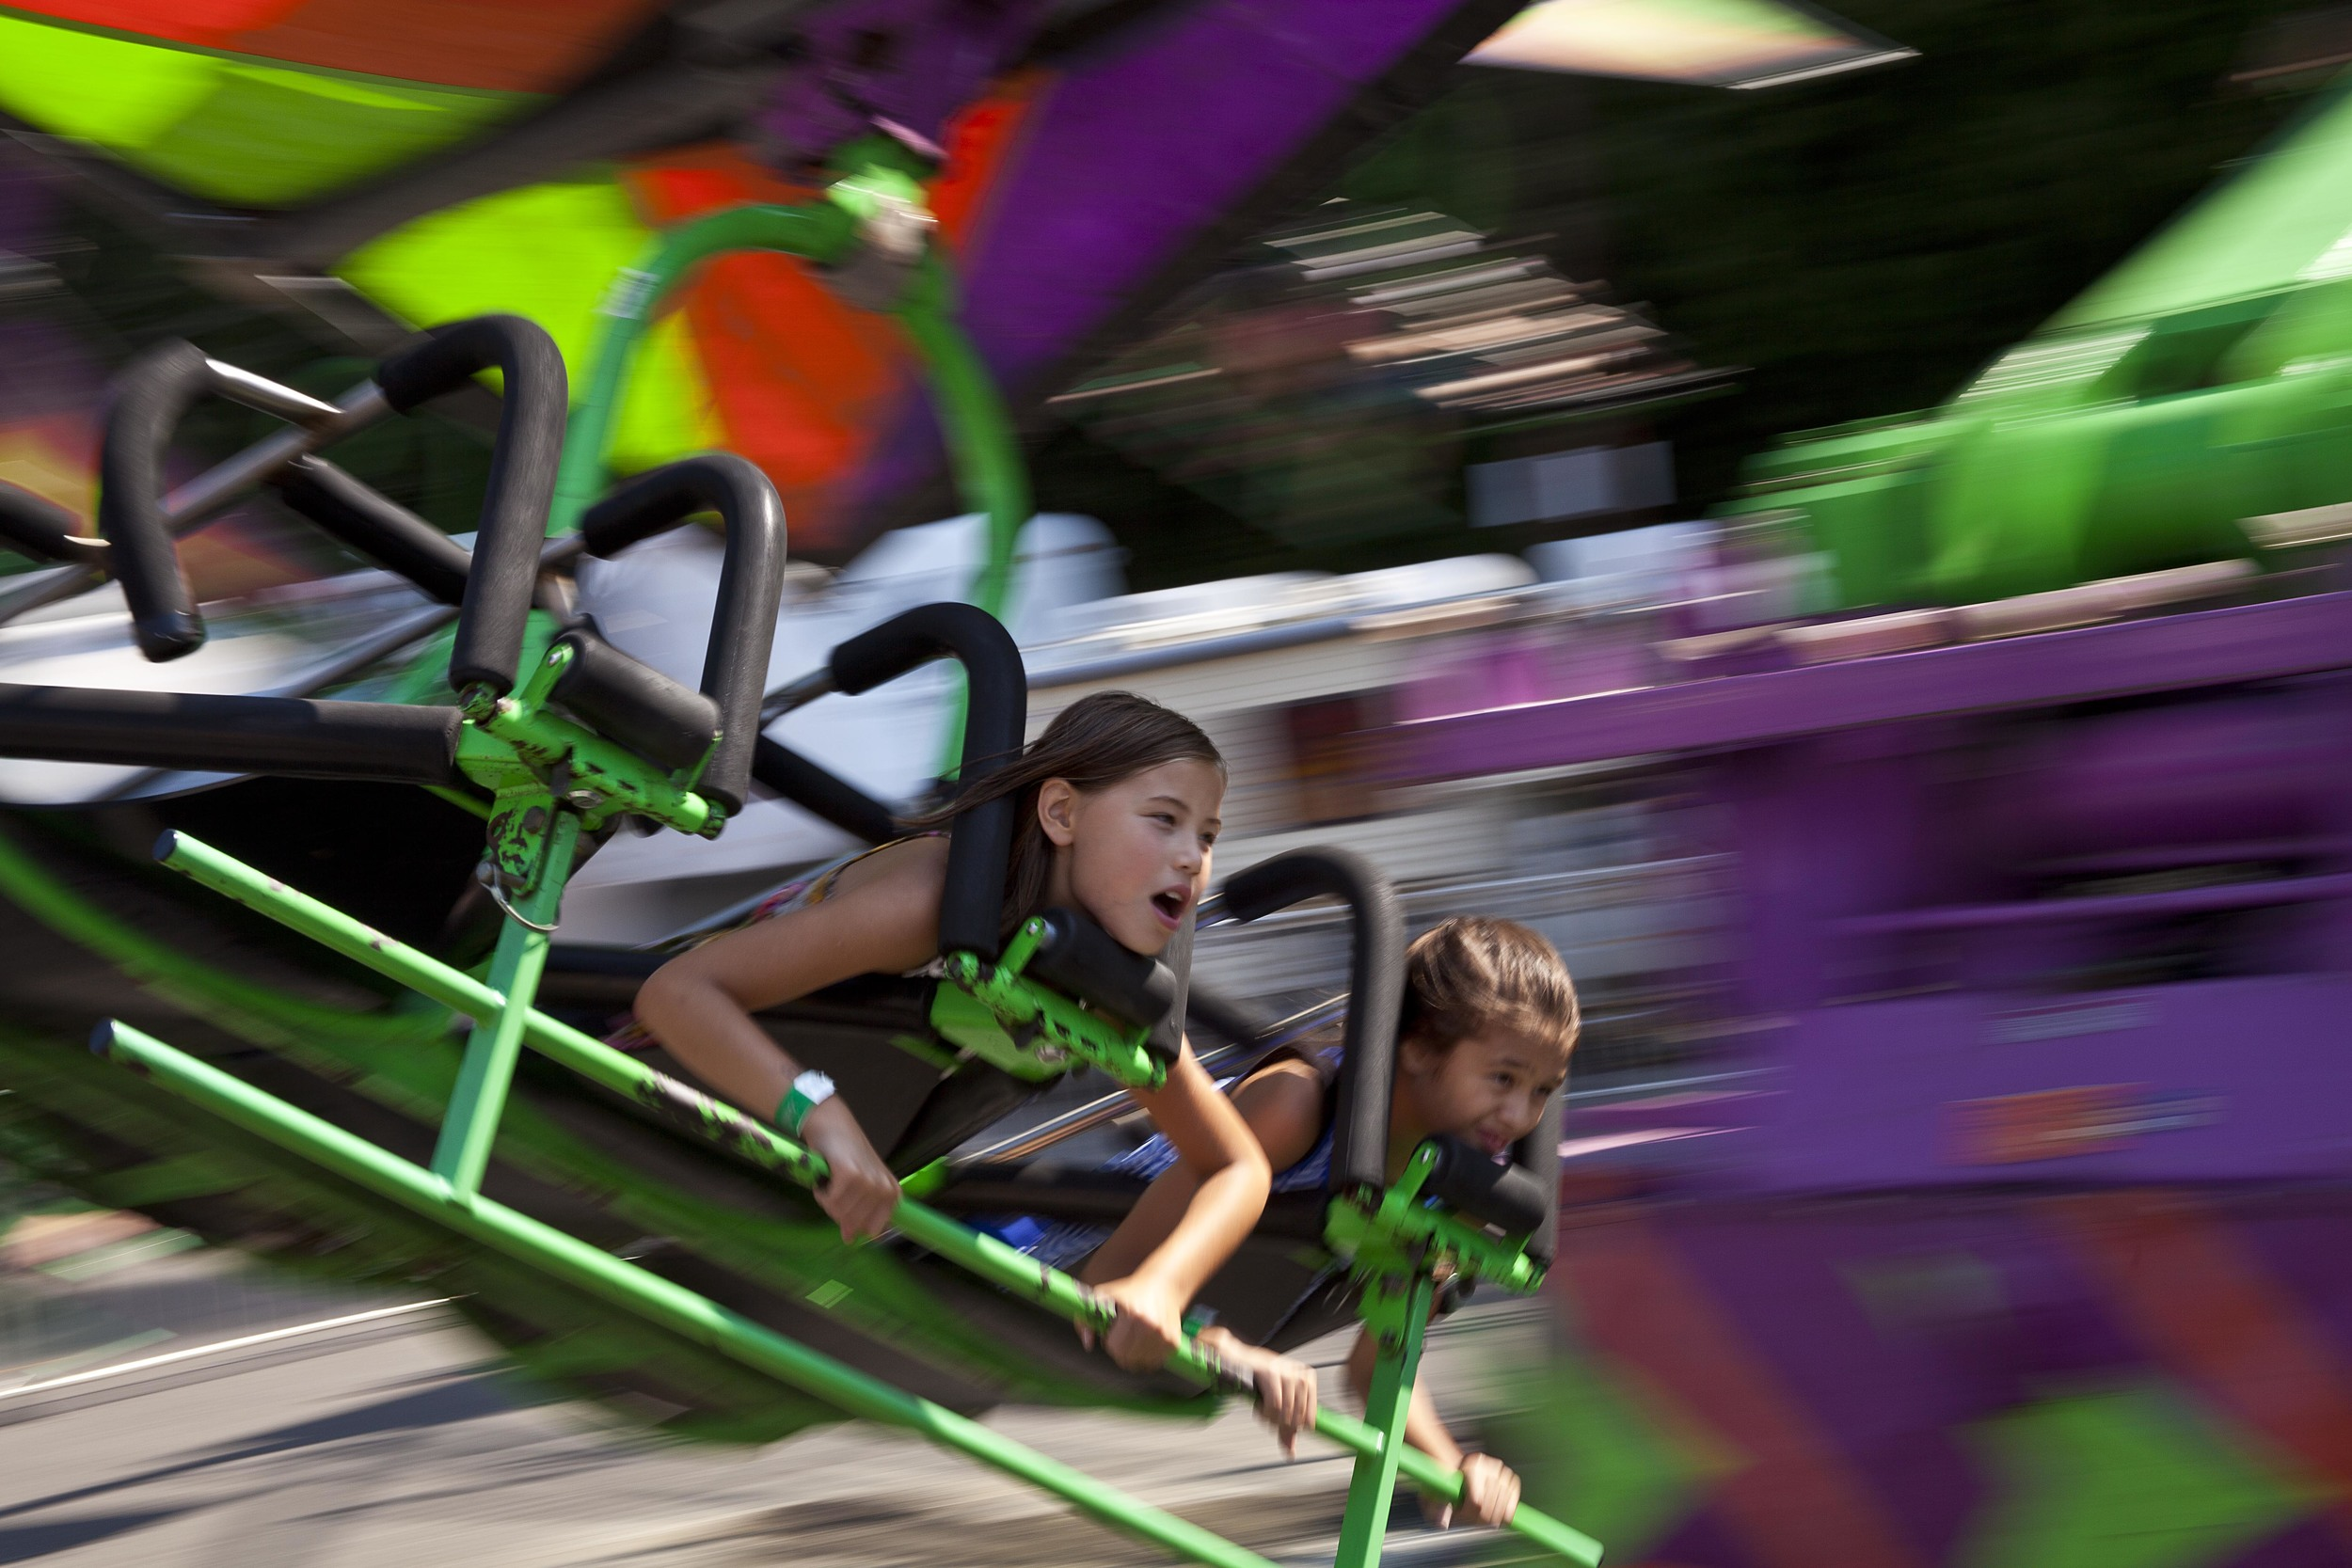 Children enjoy a ride at the 2014 Washington State Fair.